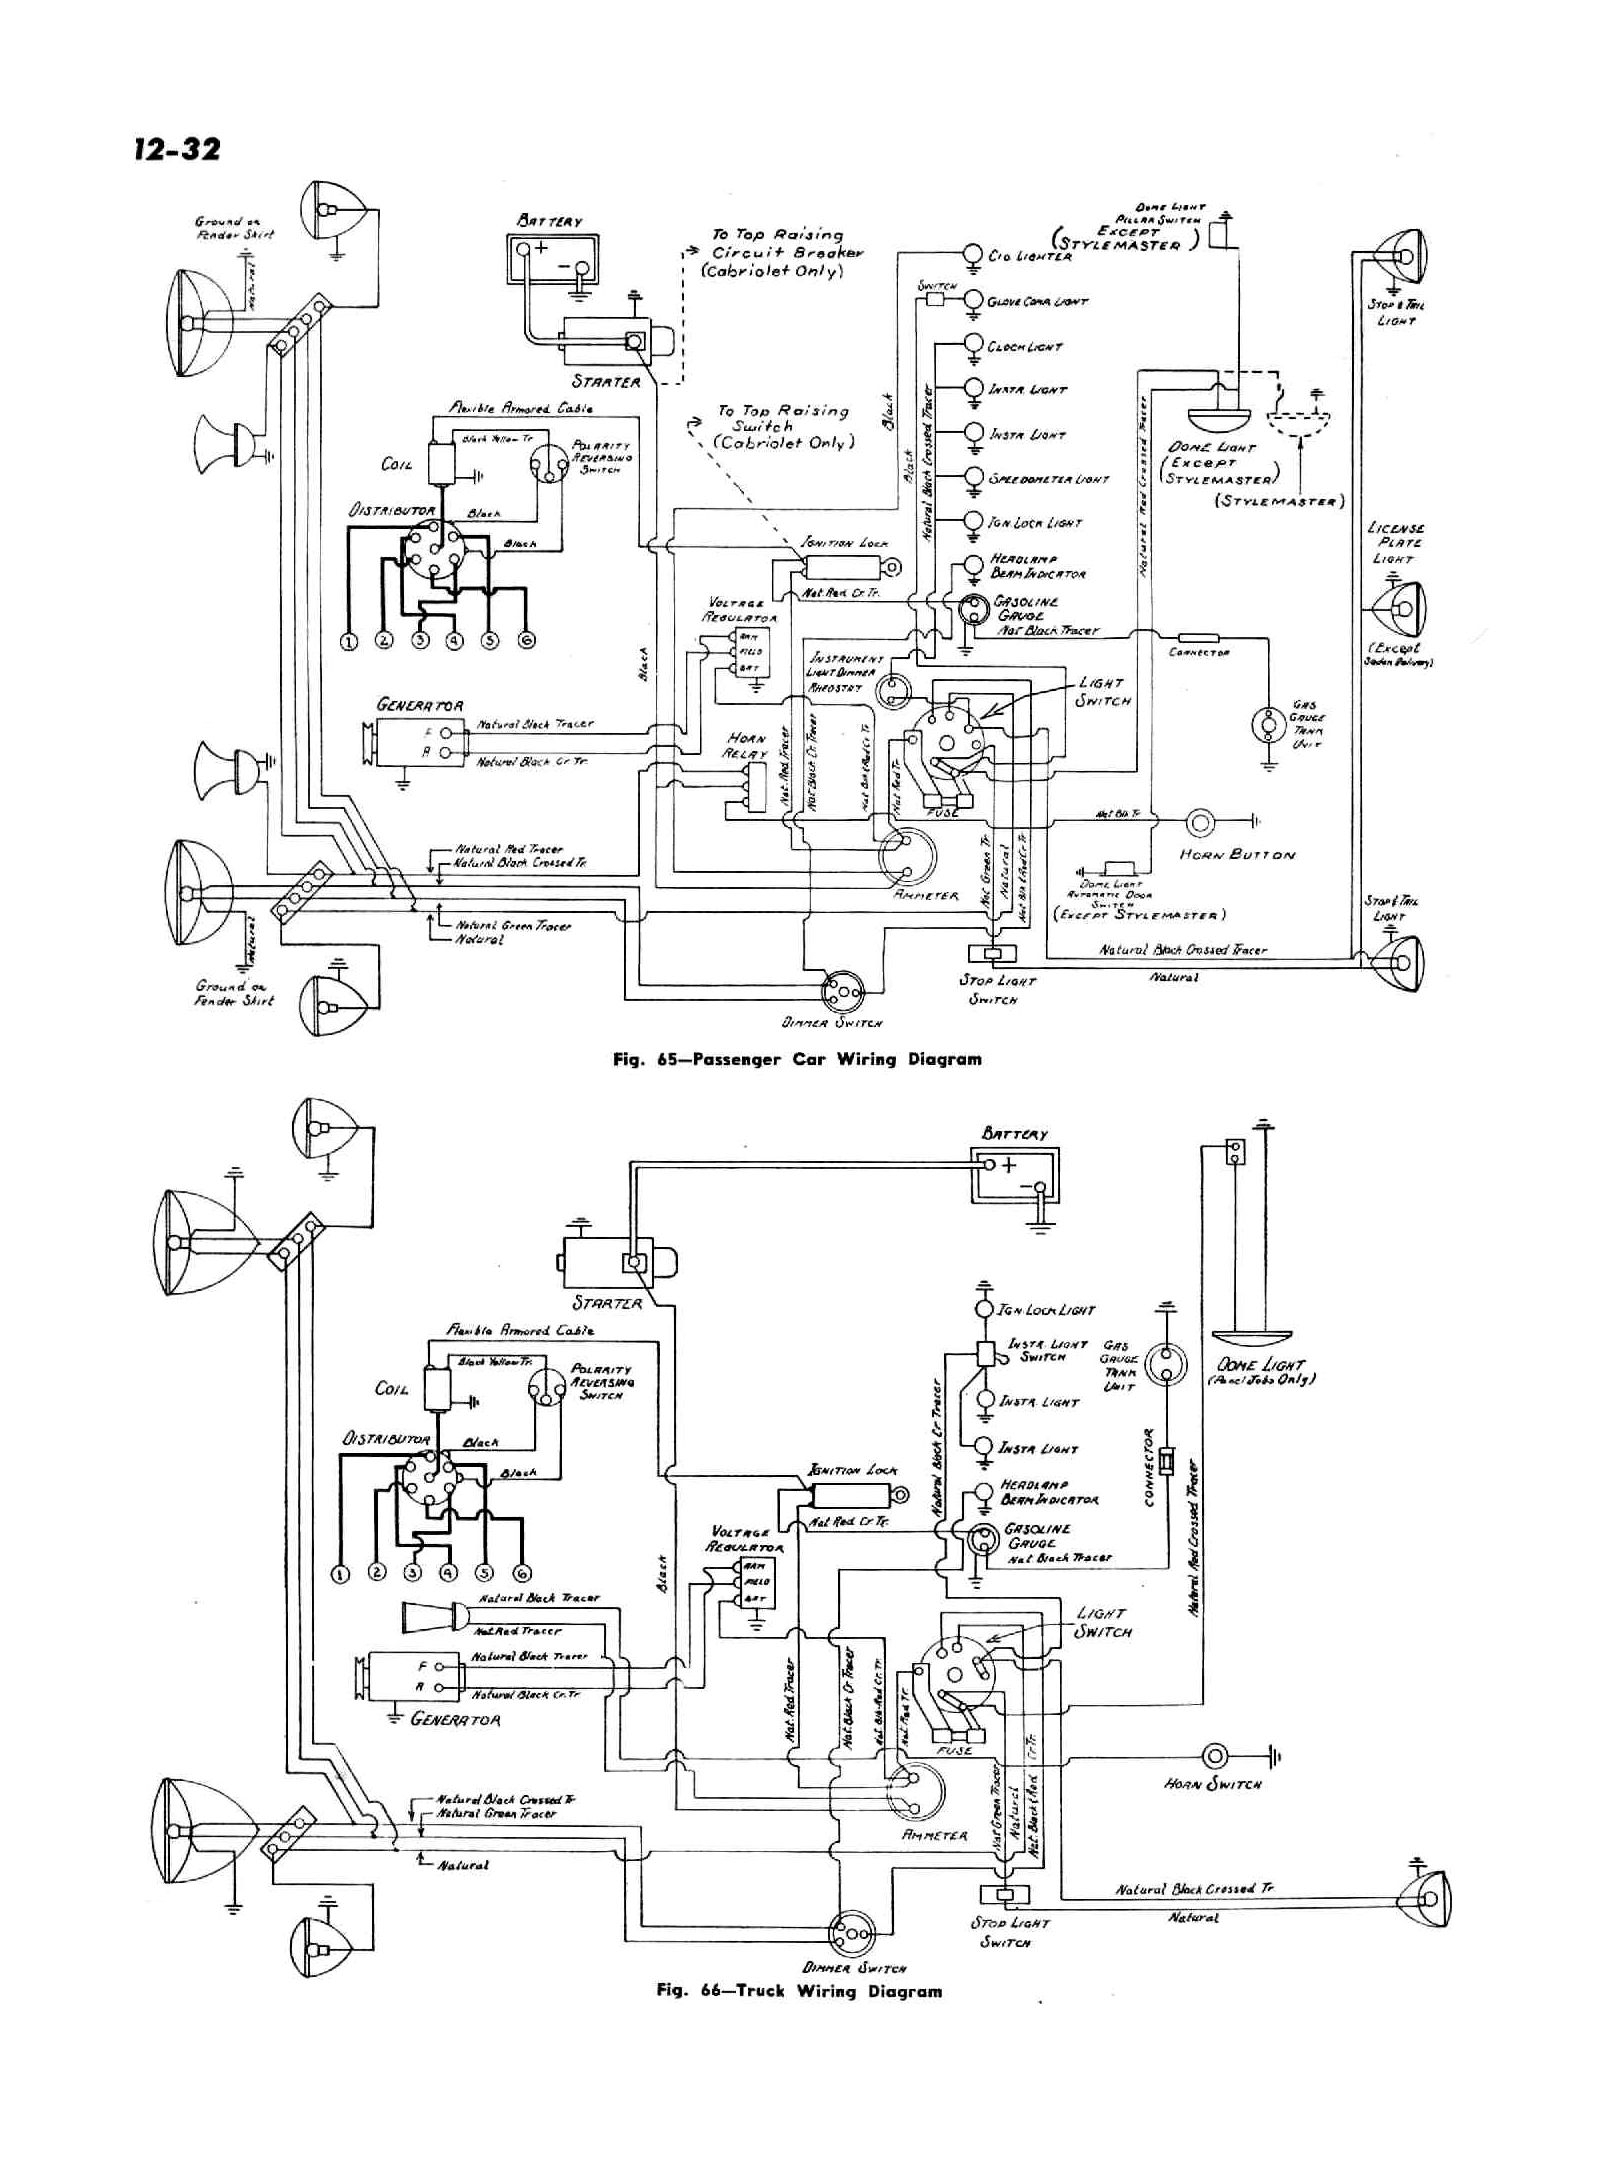 1066 international tractor wiring diagram